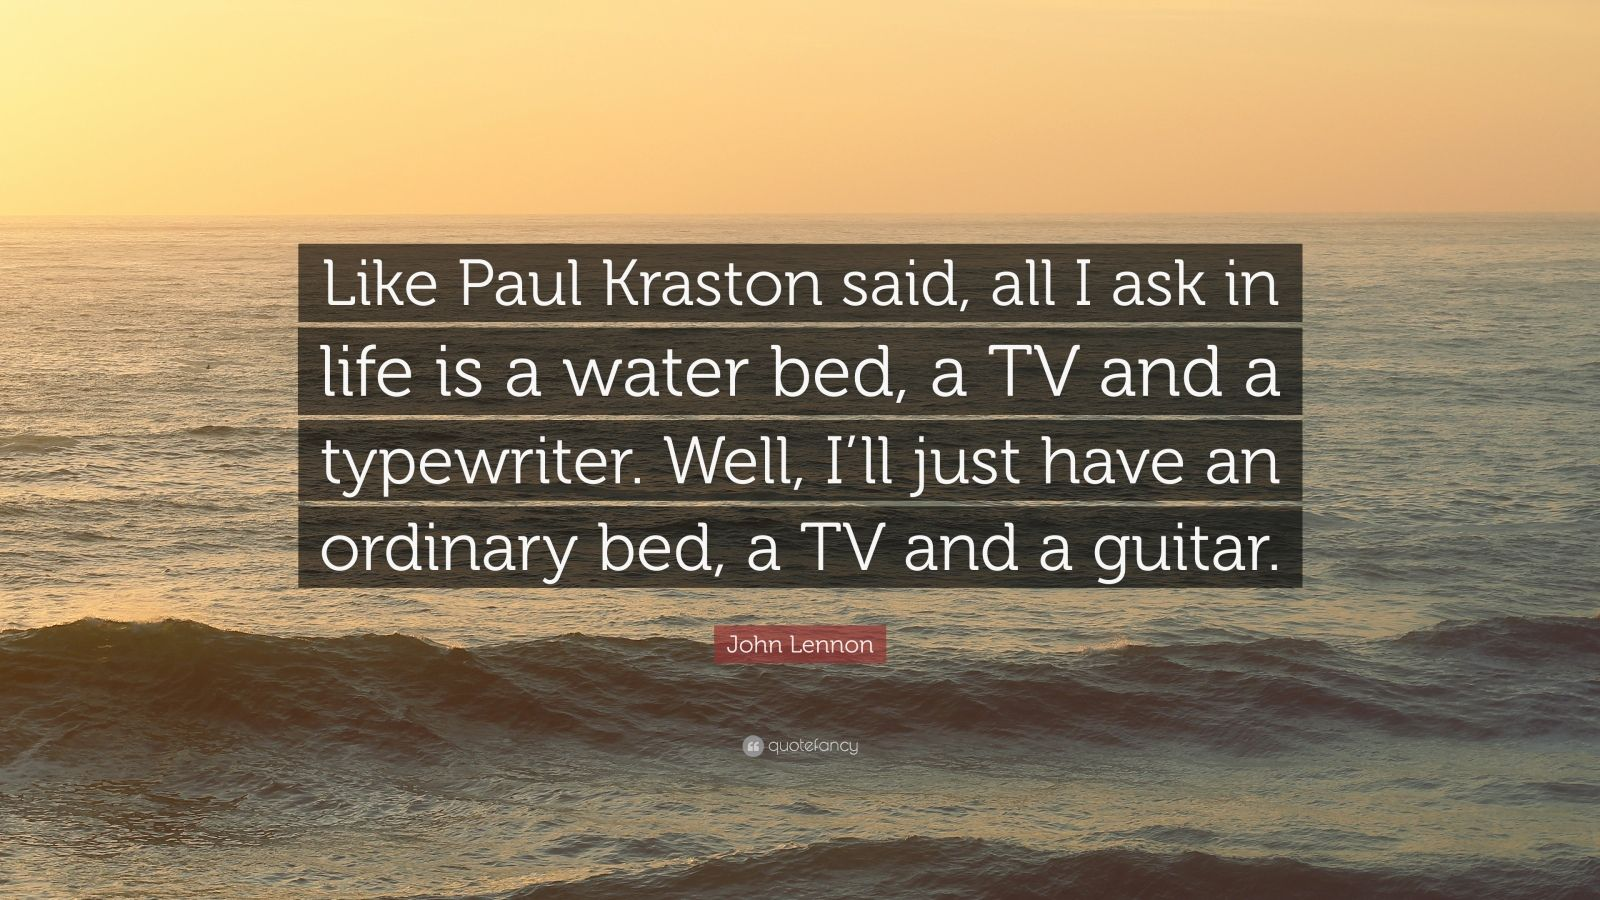 "John Lennon Quote: ""Like Paul Kraston said, all I ask in life is a water bed, a TV and a typewriter. Well, I'll just have an ordinary bed, a TV and a guitar."""